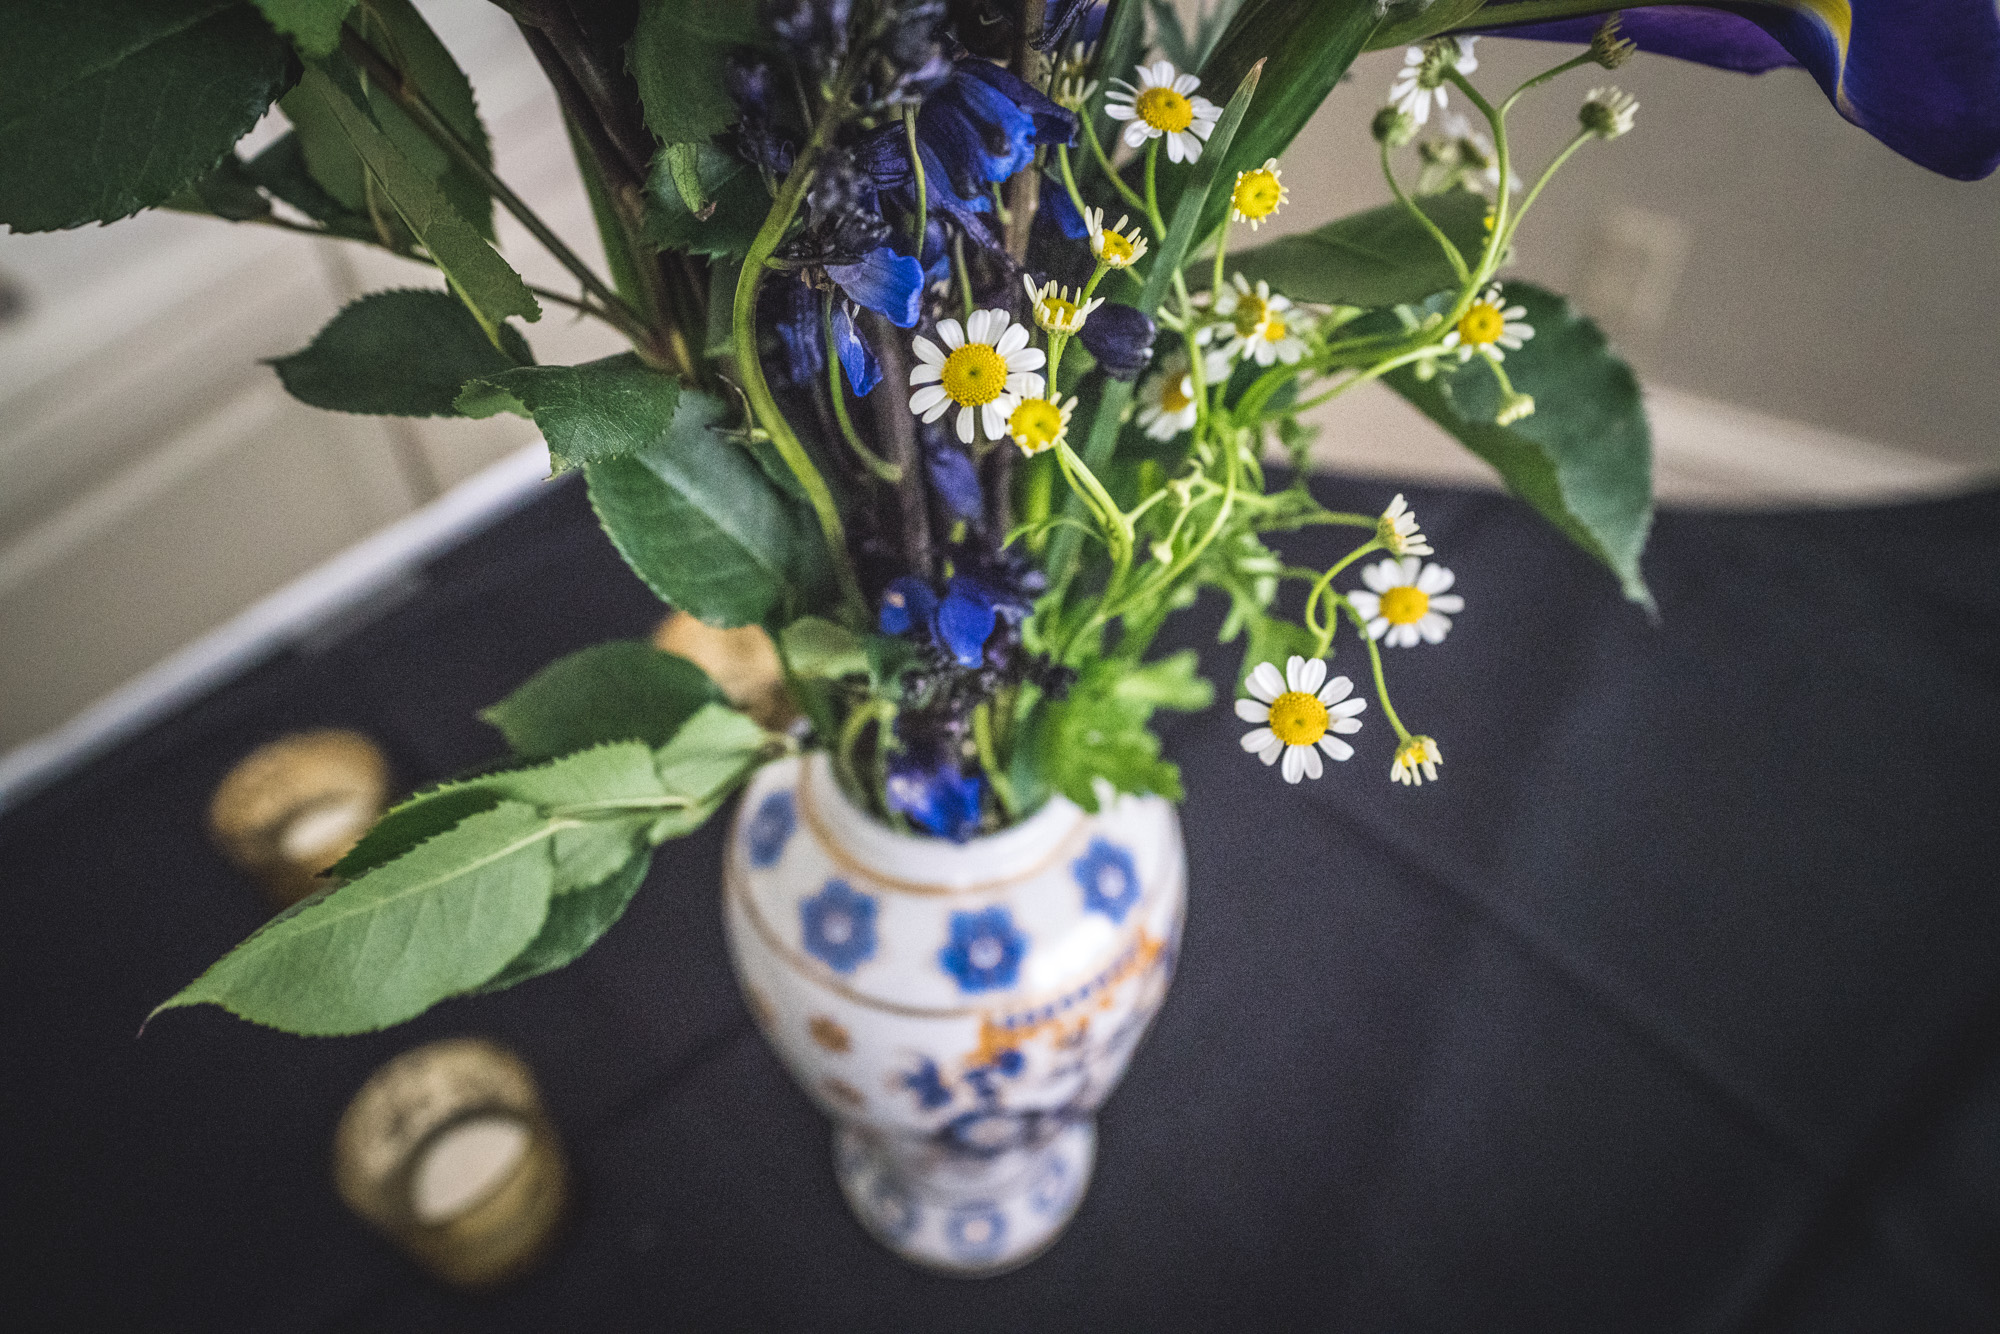 Tiny white flowers with yellow middles as well as blue irises rest in a white and blue vase on a table at a wedding reception